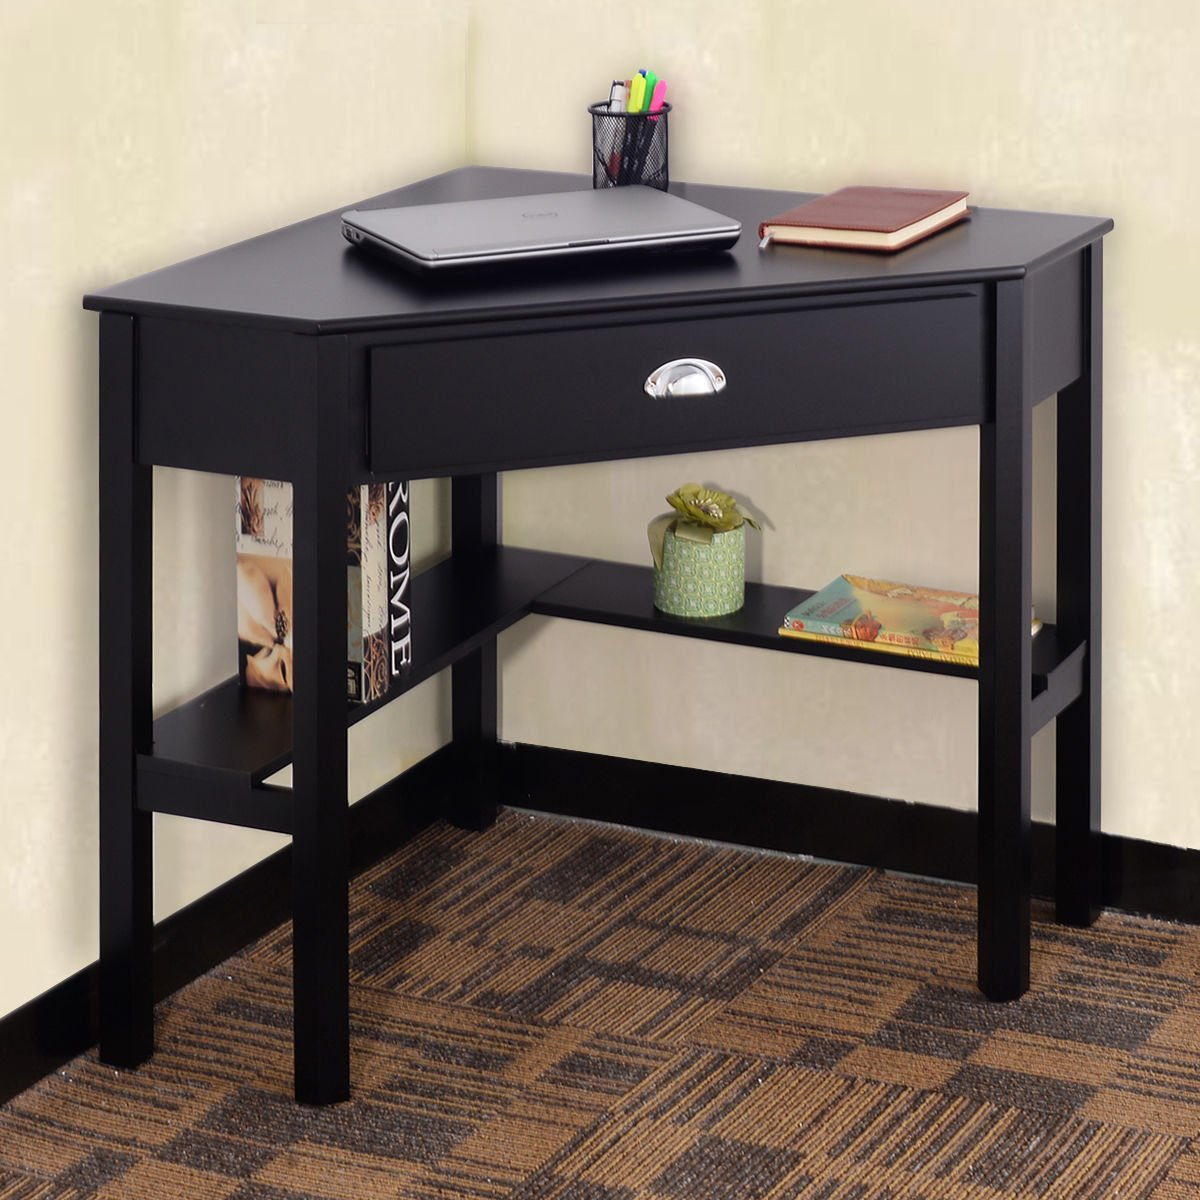 Amazon com  Tangkula Corner Computer Desk with Drawer Wood Laptop Writing  Desk Home Office Furniture  Black  Kitchen   DiningAmazon com  Tangkula Corner Computer Desk with Drawer Wood Laptop  . Everything Office Furniture Corner Computer Desk. Home Design Ideas